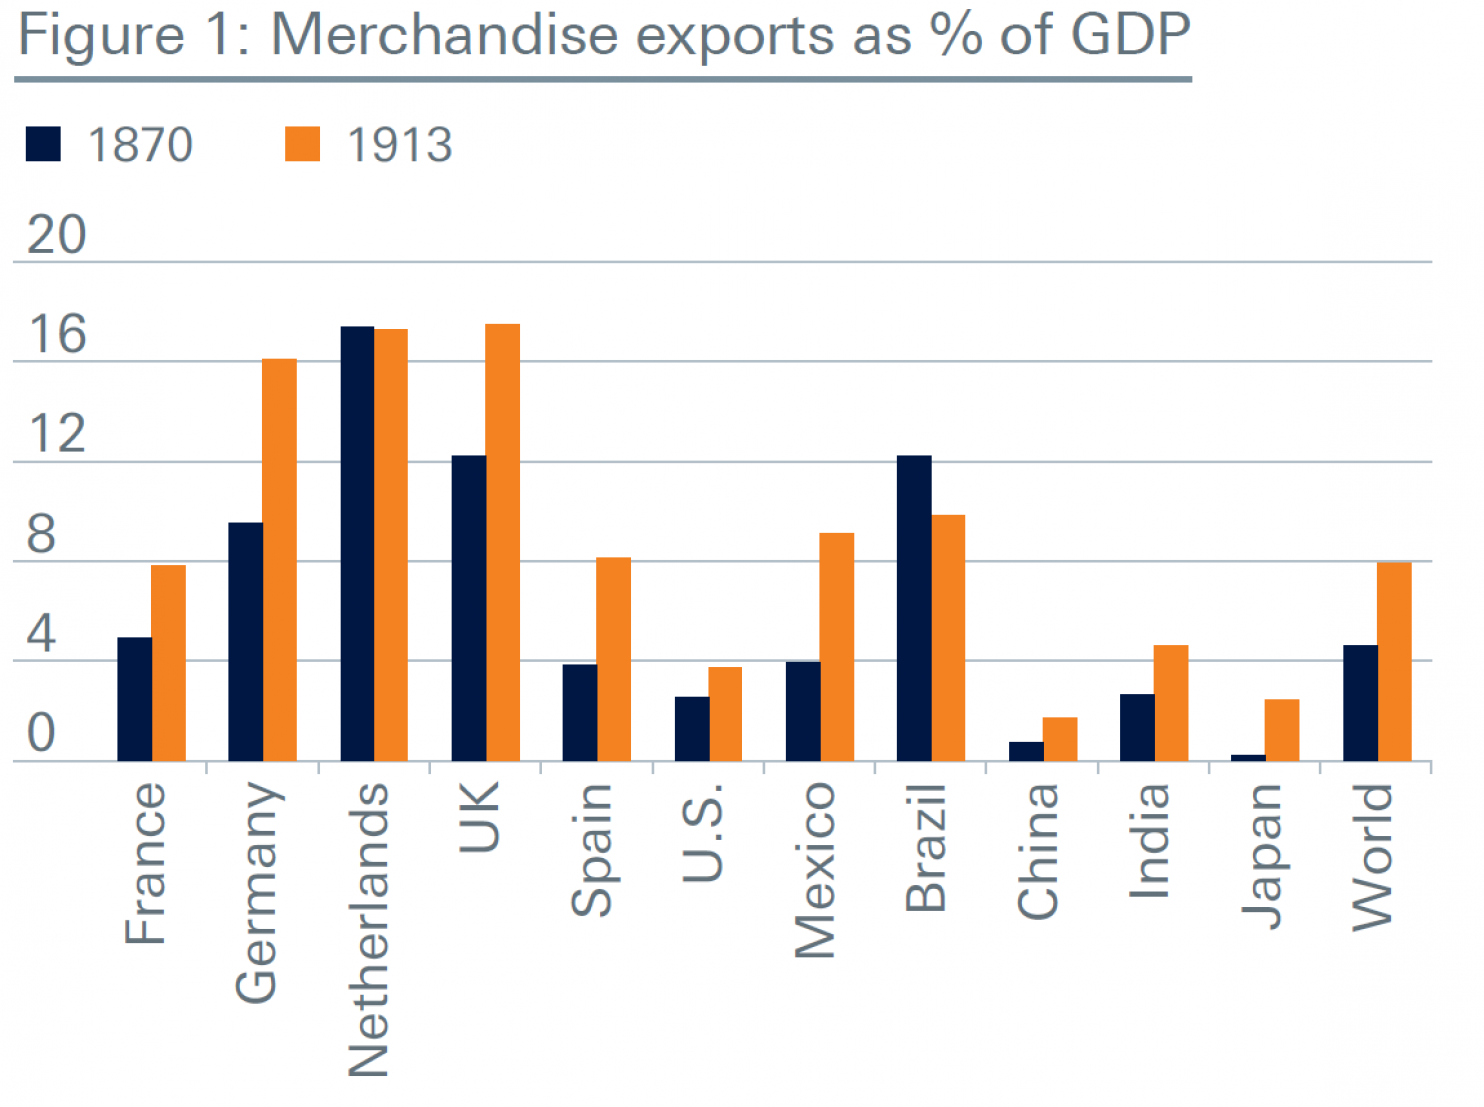 170105-merchandise exports percentage gdp 1870 1913 Source Deutsche Asset Management